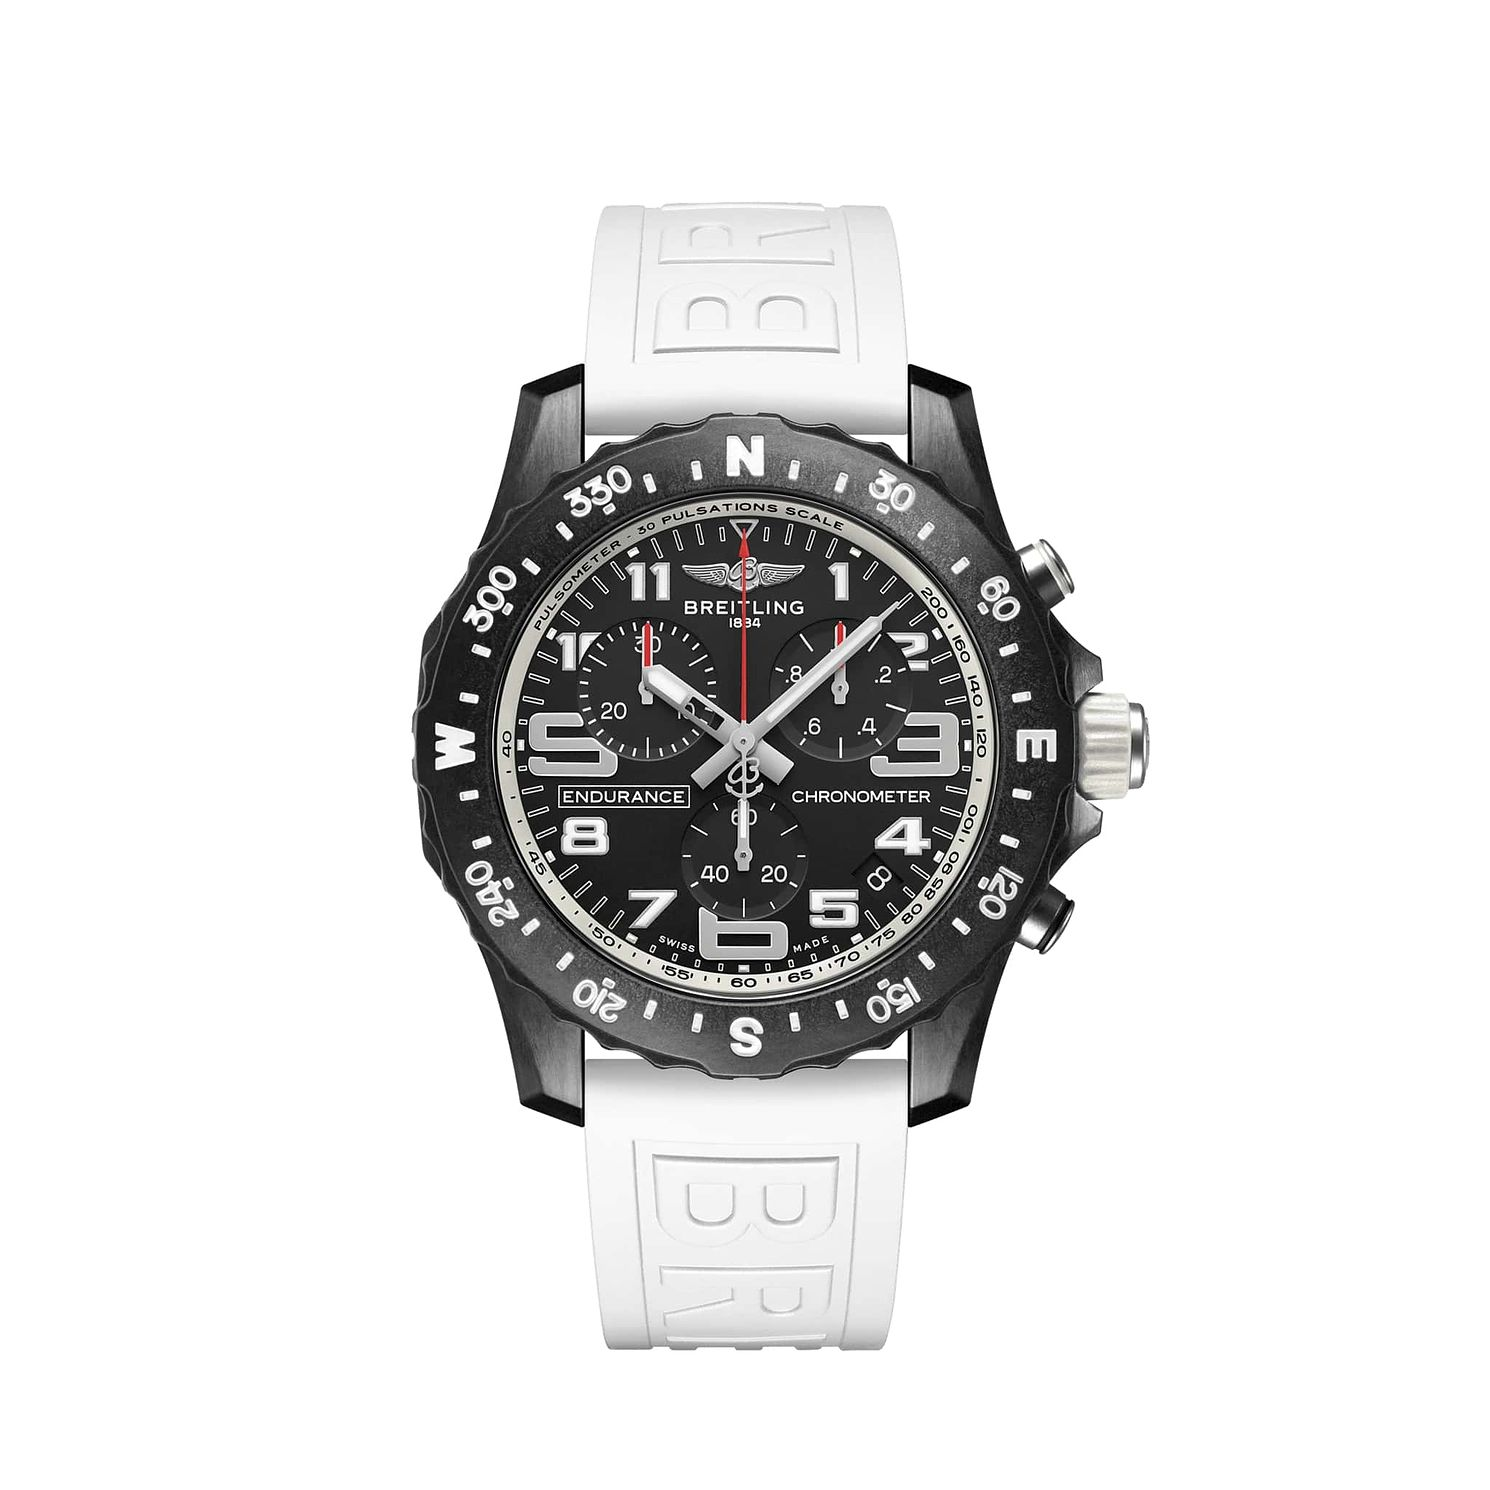 Breitling Endurance Pro Chrono White Rubber Strap Watch - Product number 1162861